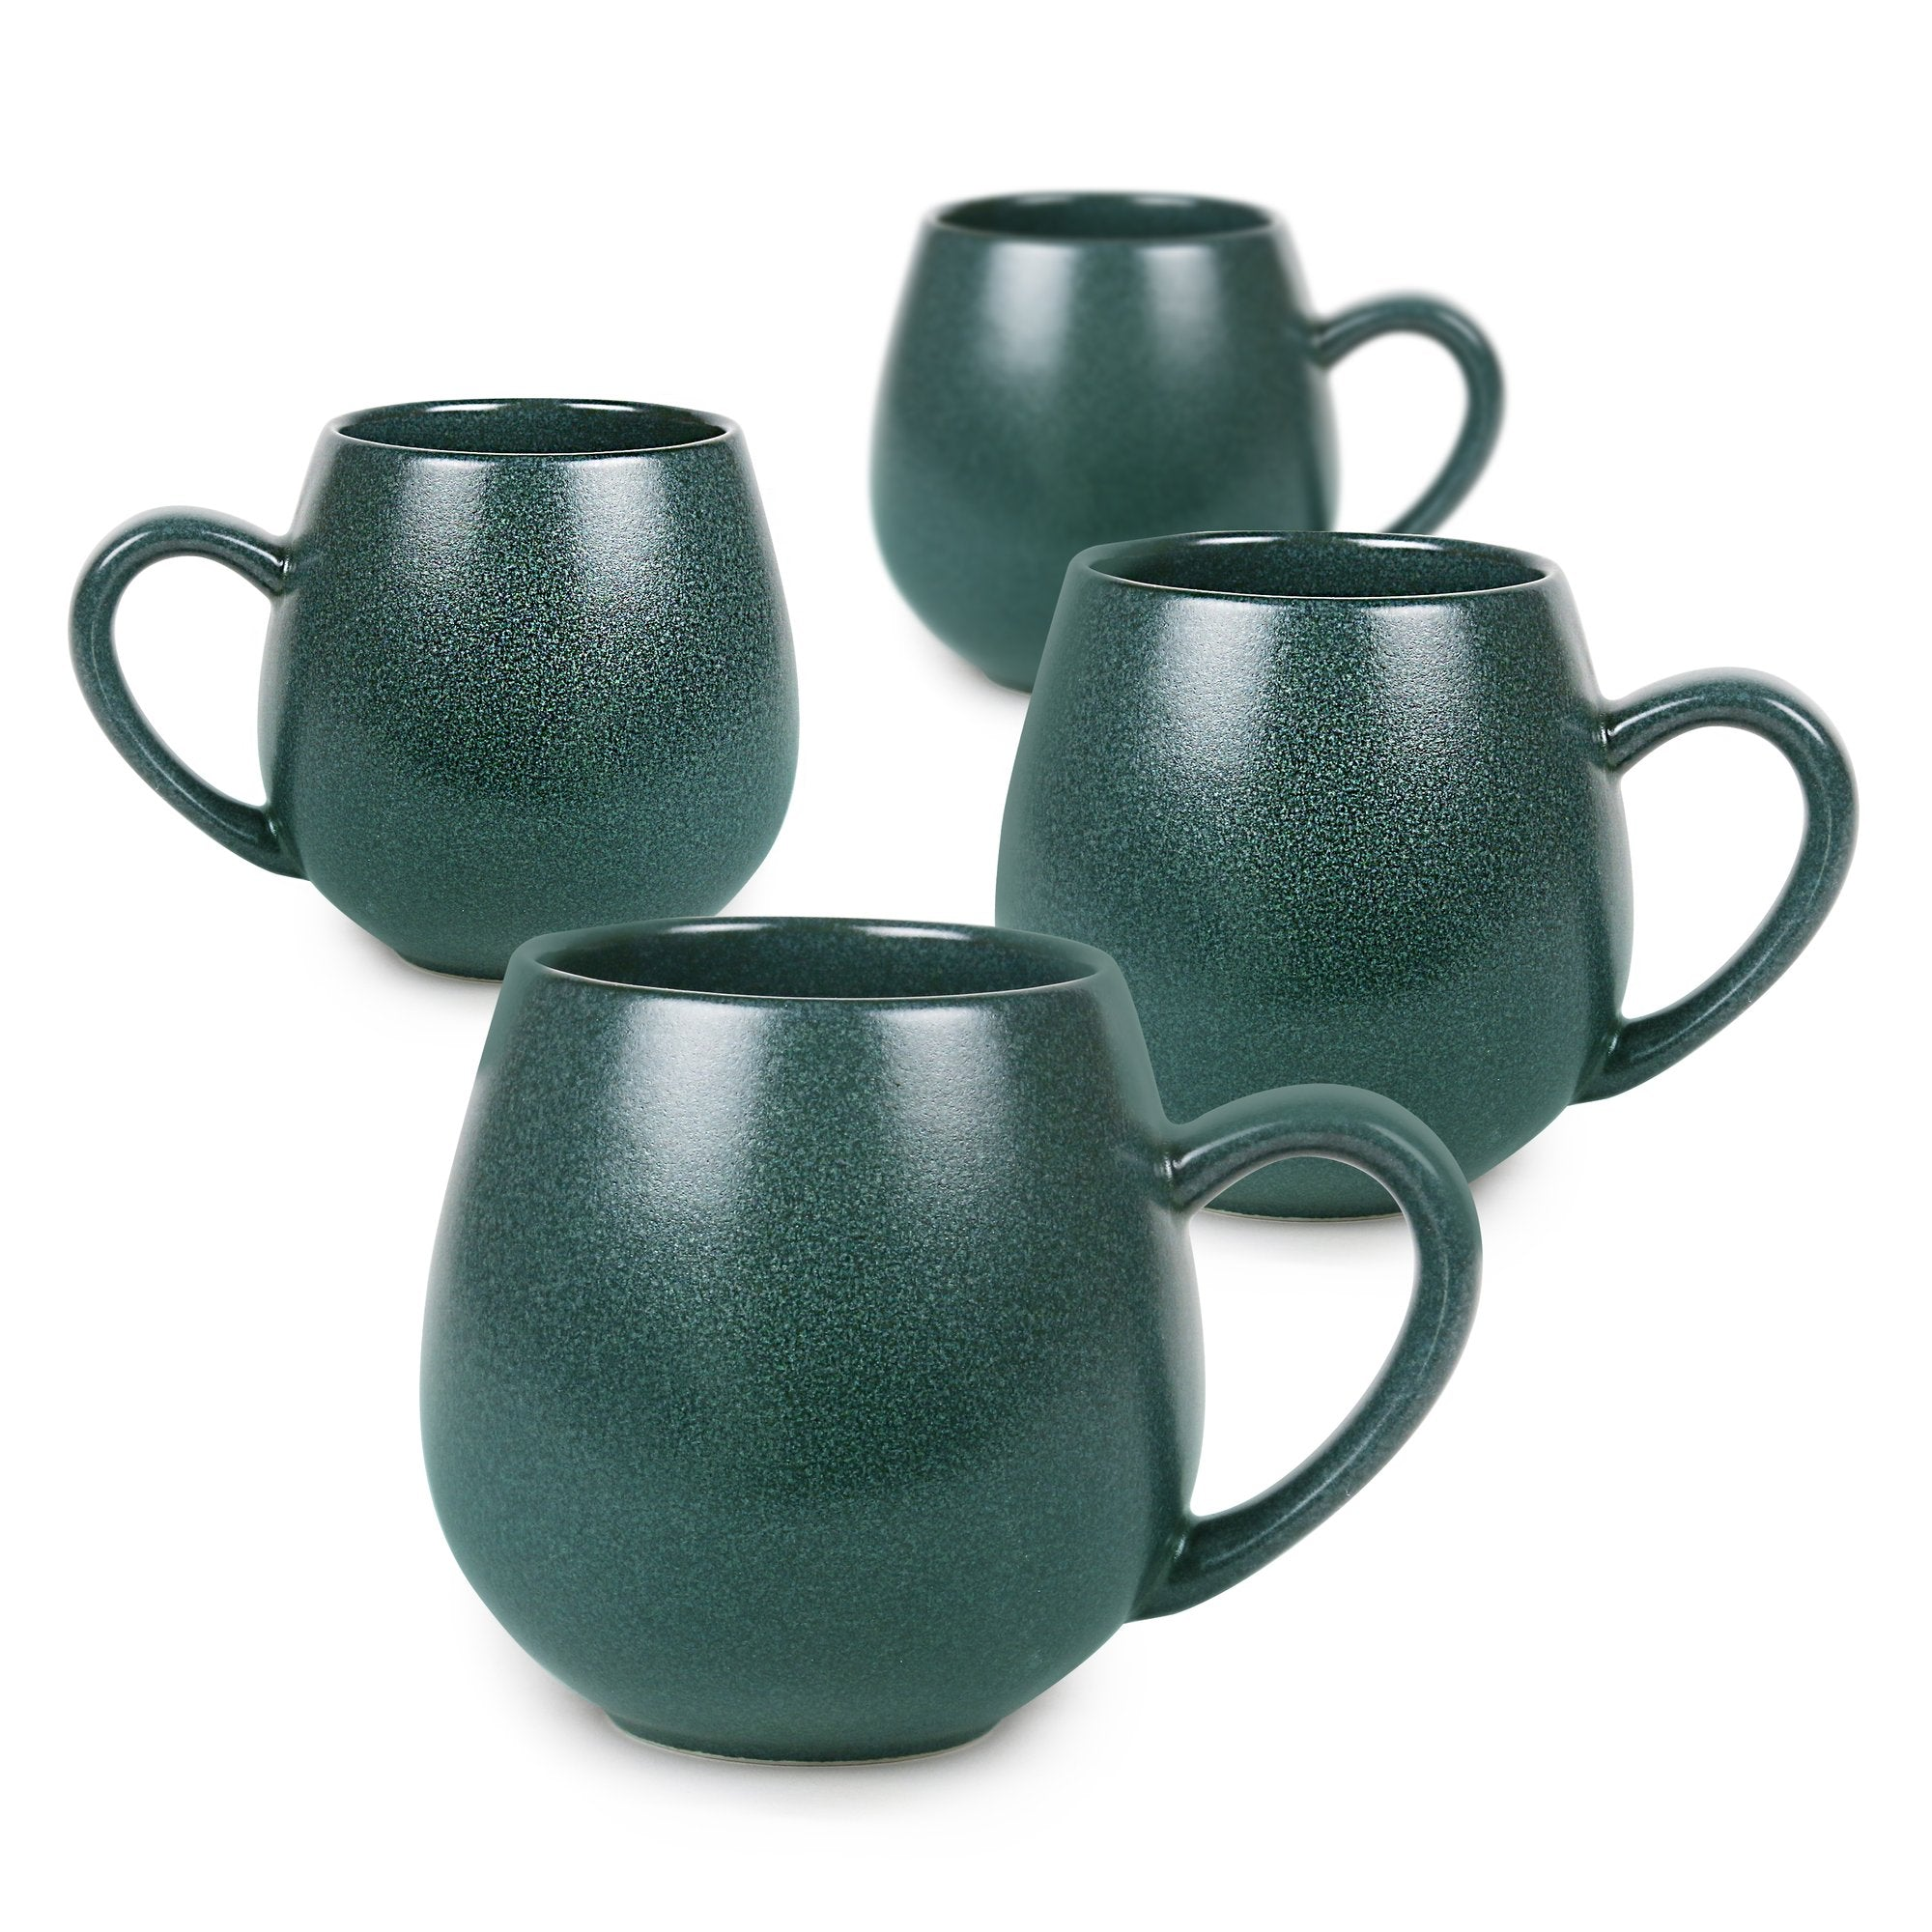 Mug 4PK - Forest Green Hug Me